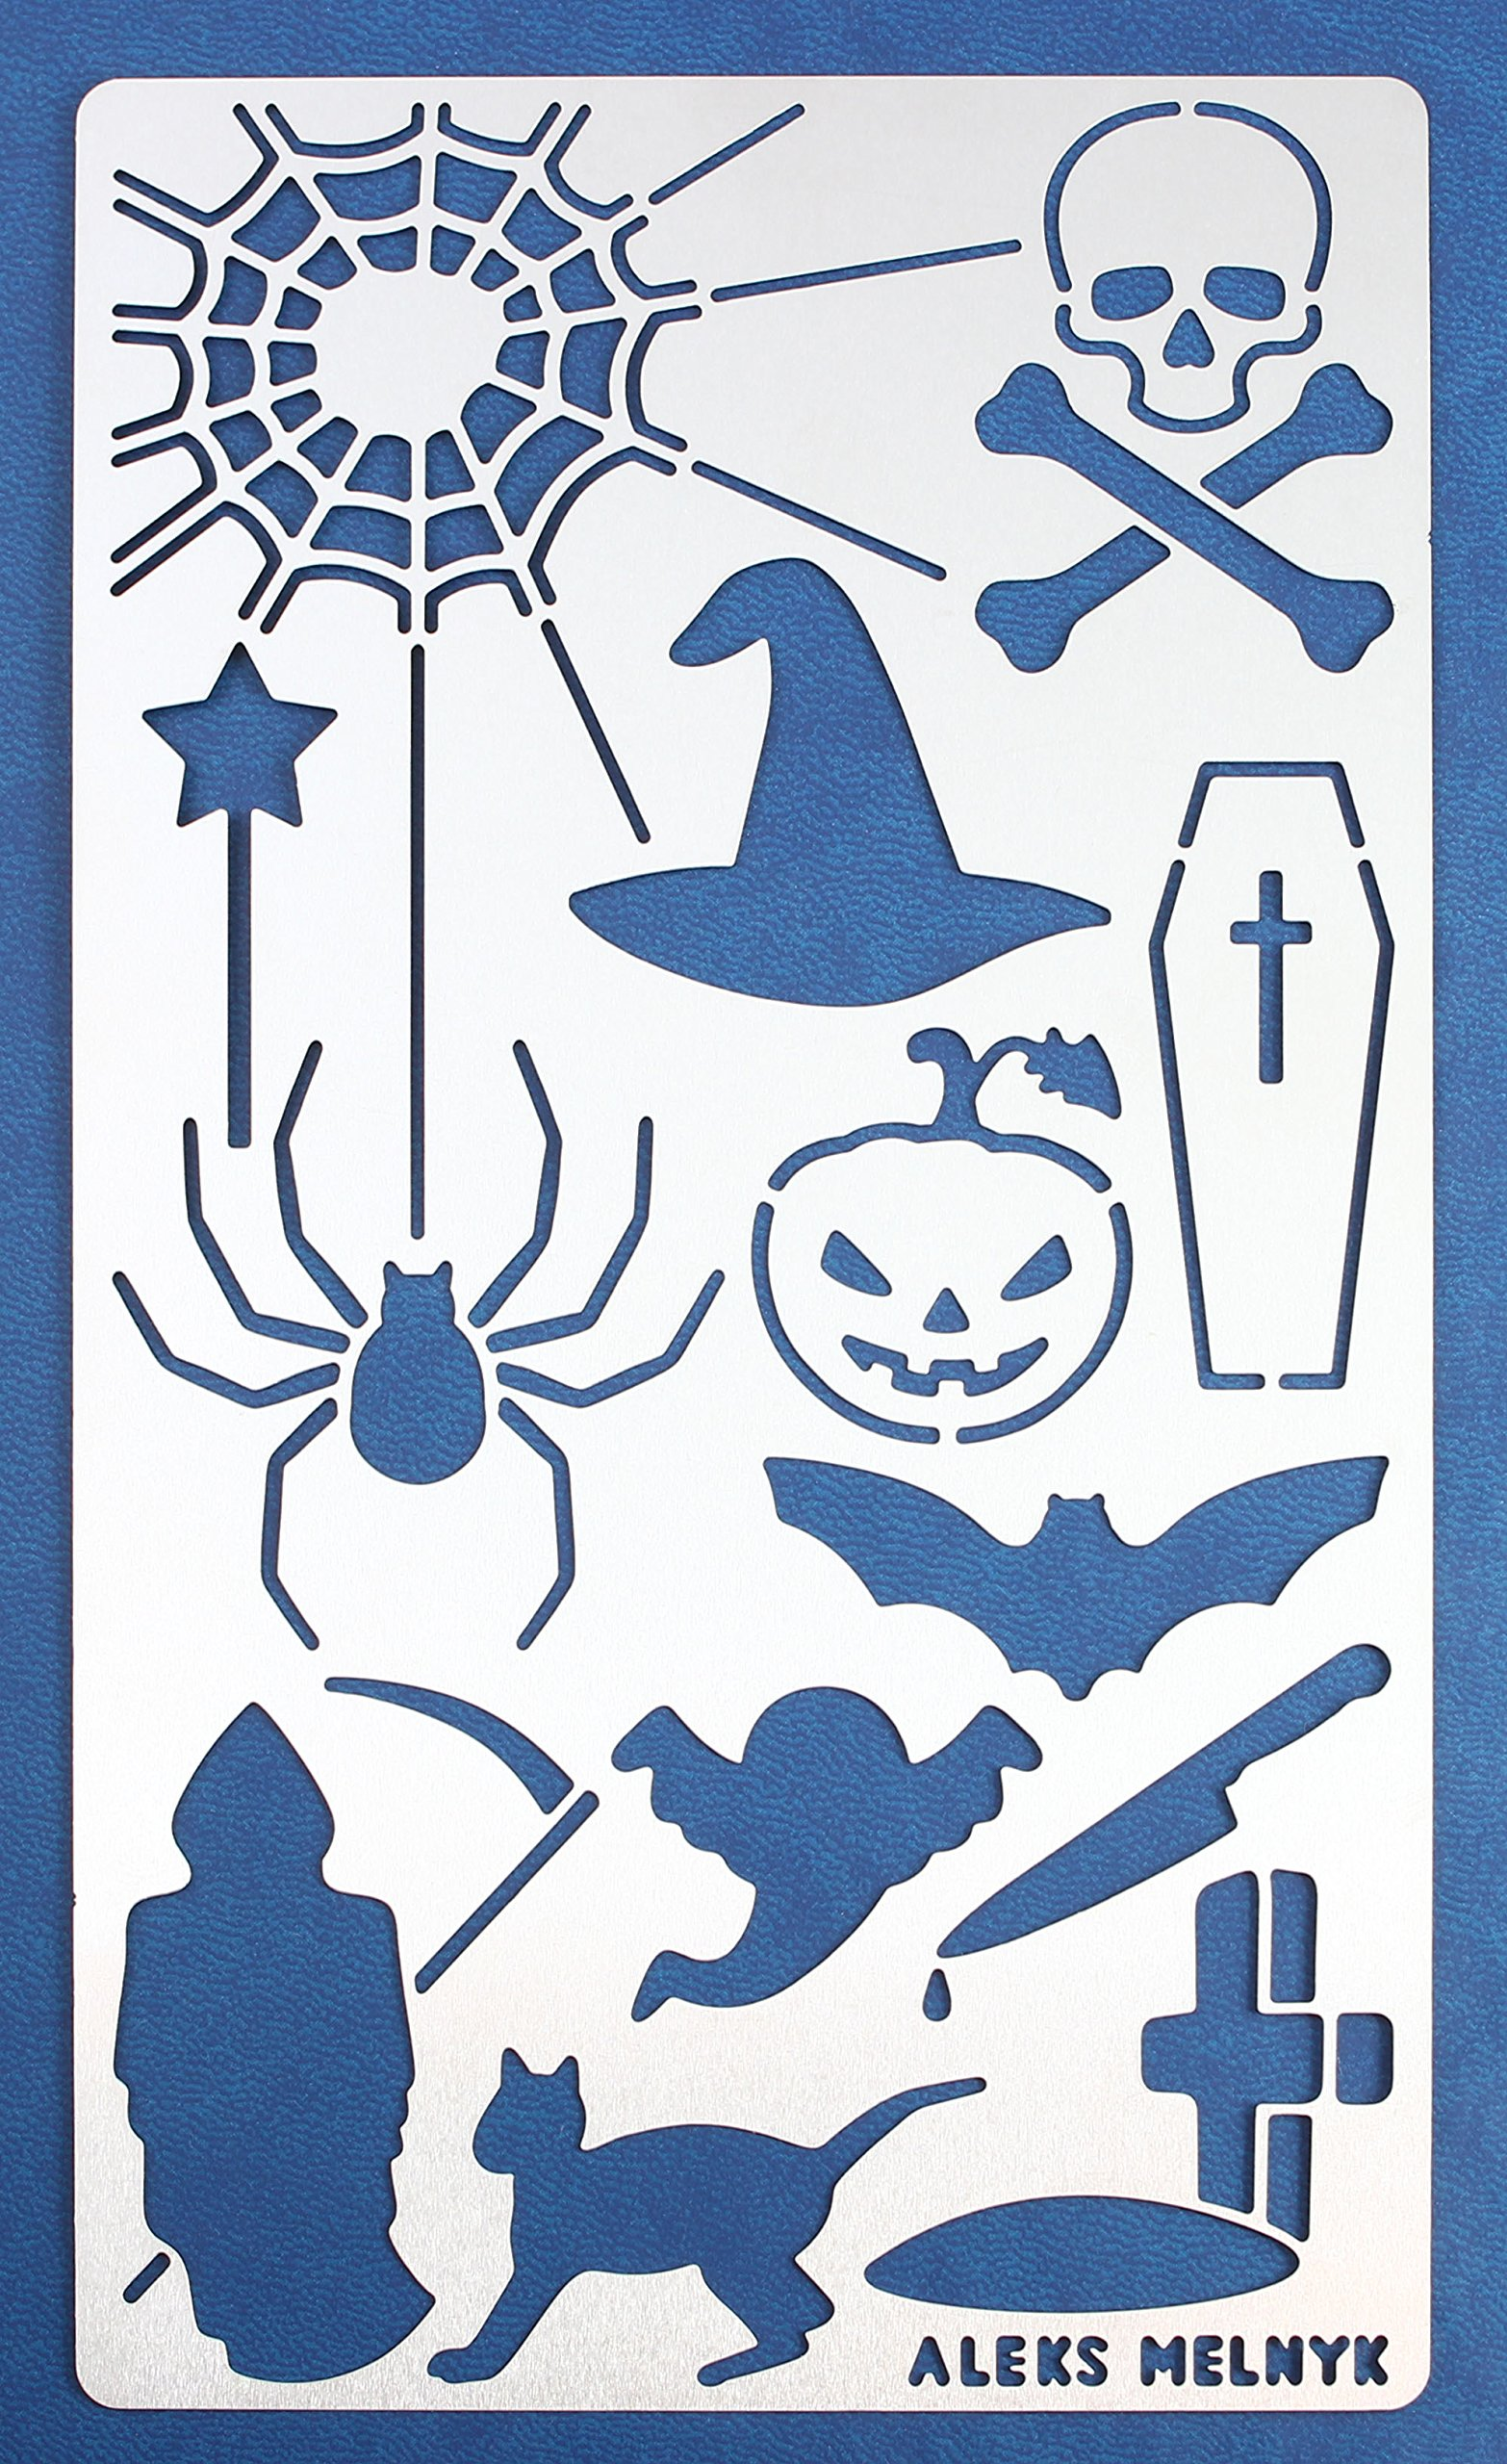 Aleks Melnyk #17 Metal Journal Stencil/Halloween/Stainless Steel Stencil 1 PCS/Template Tool for Wood Burning, Pyrography and Engraving/Scrapbooking/Crafting/DIY